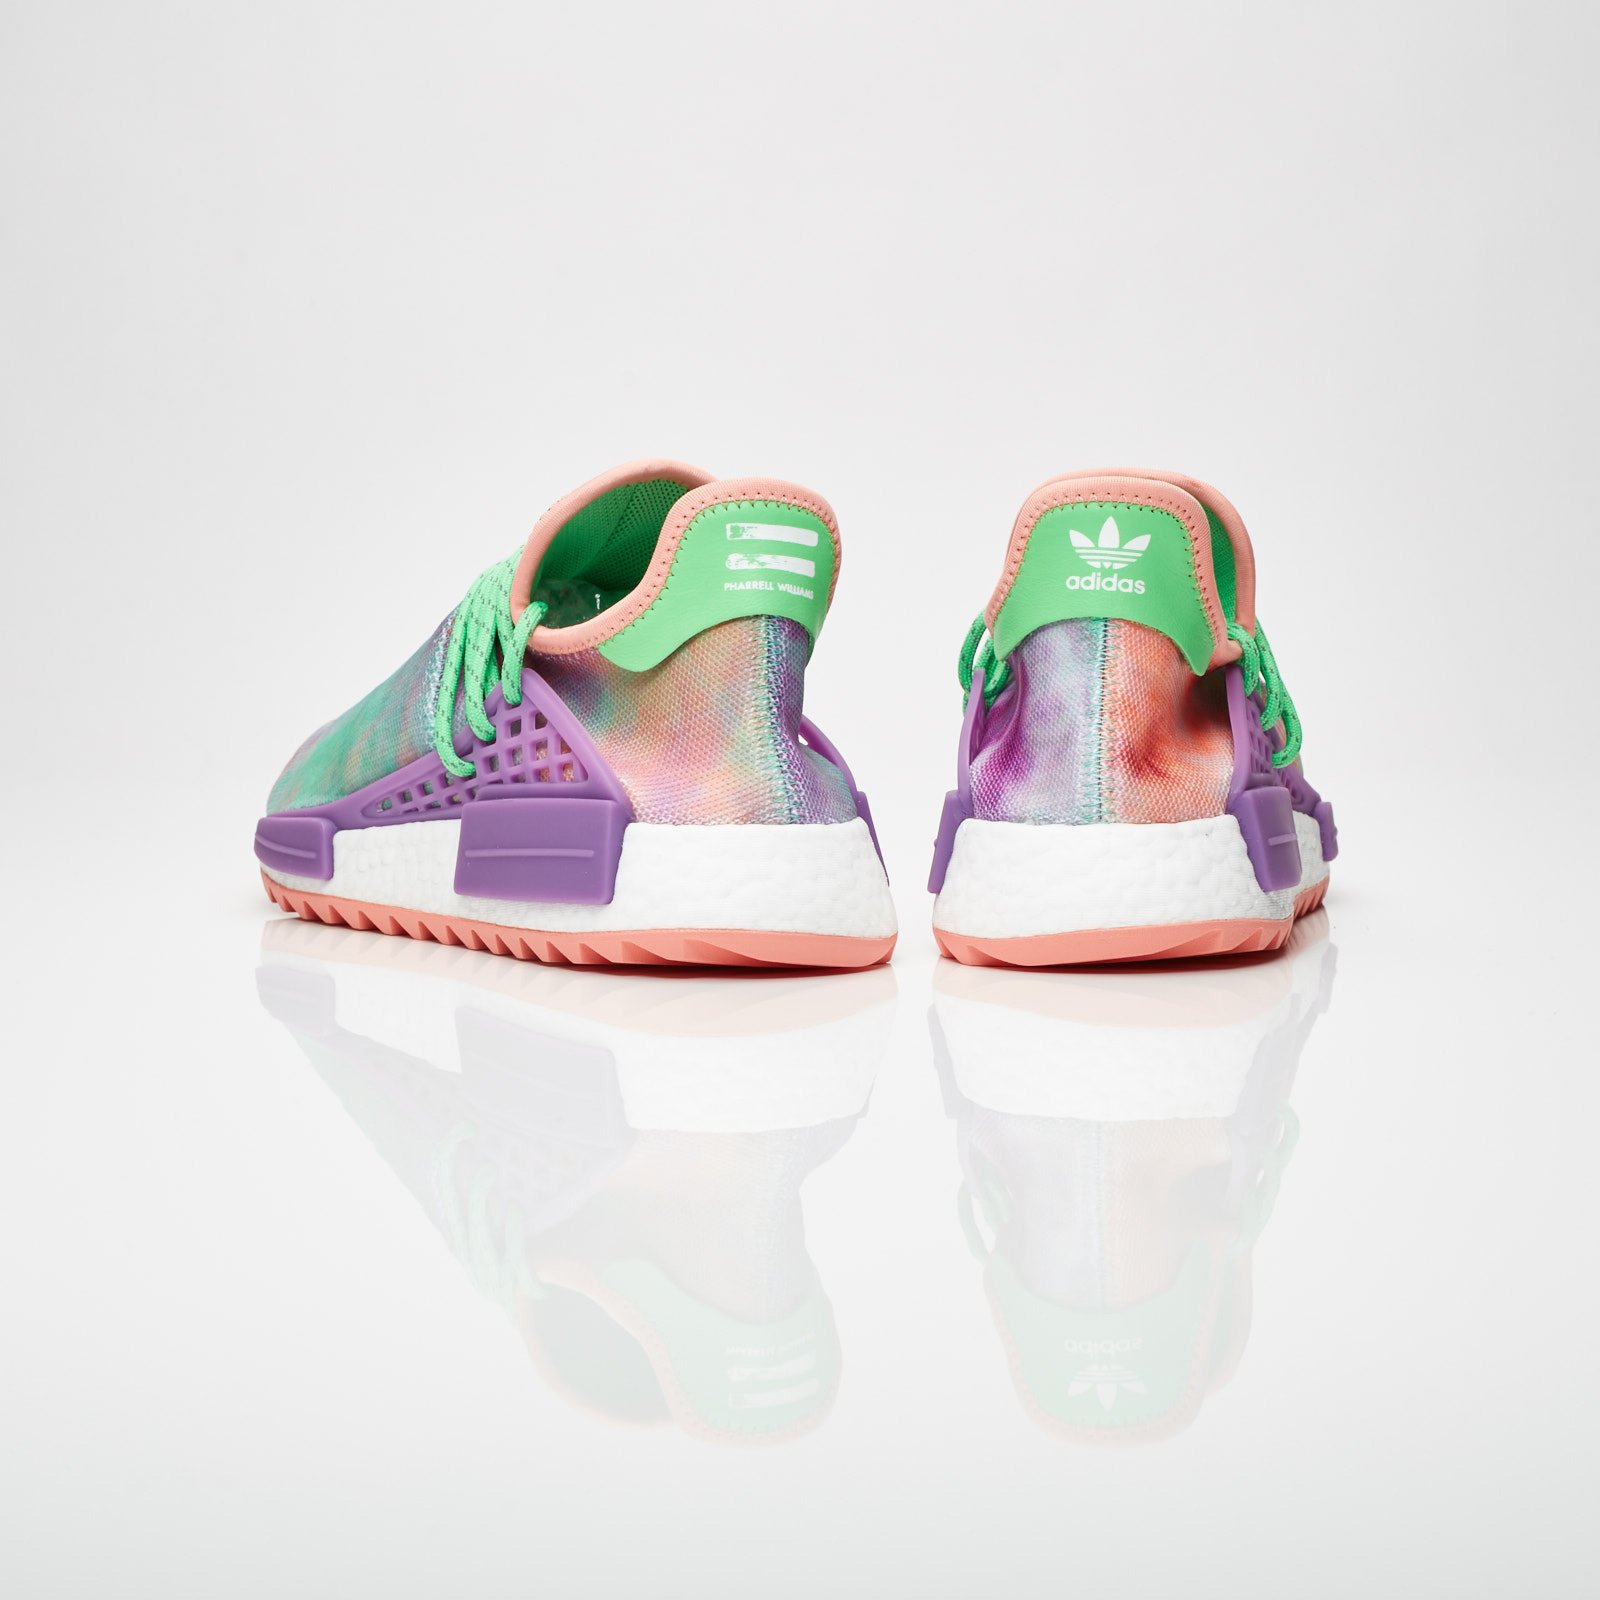 d06fff5992a8 adidas Pharrell Williams HU Holi NMD MC - Ac7034 - Sneakersnstuff ...